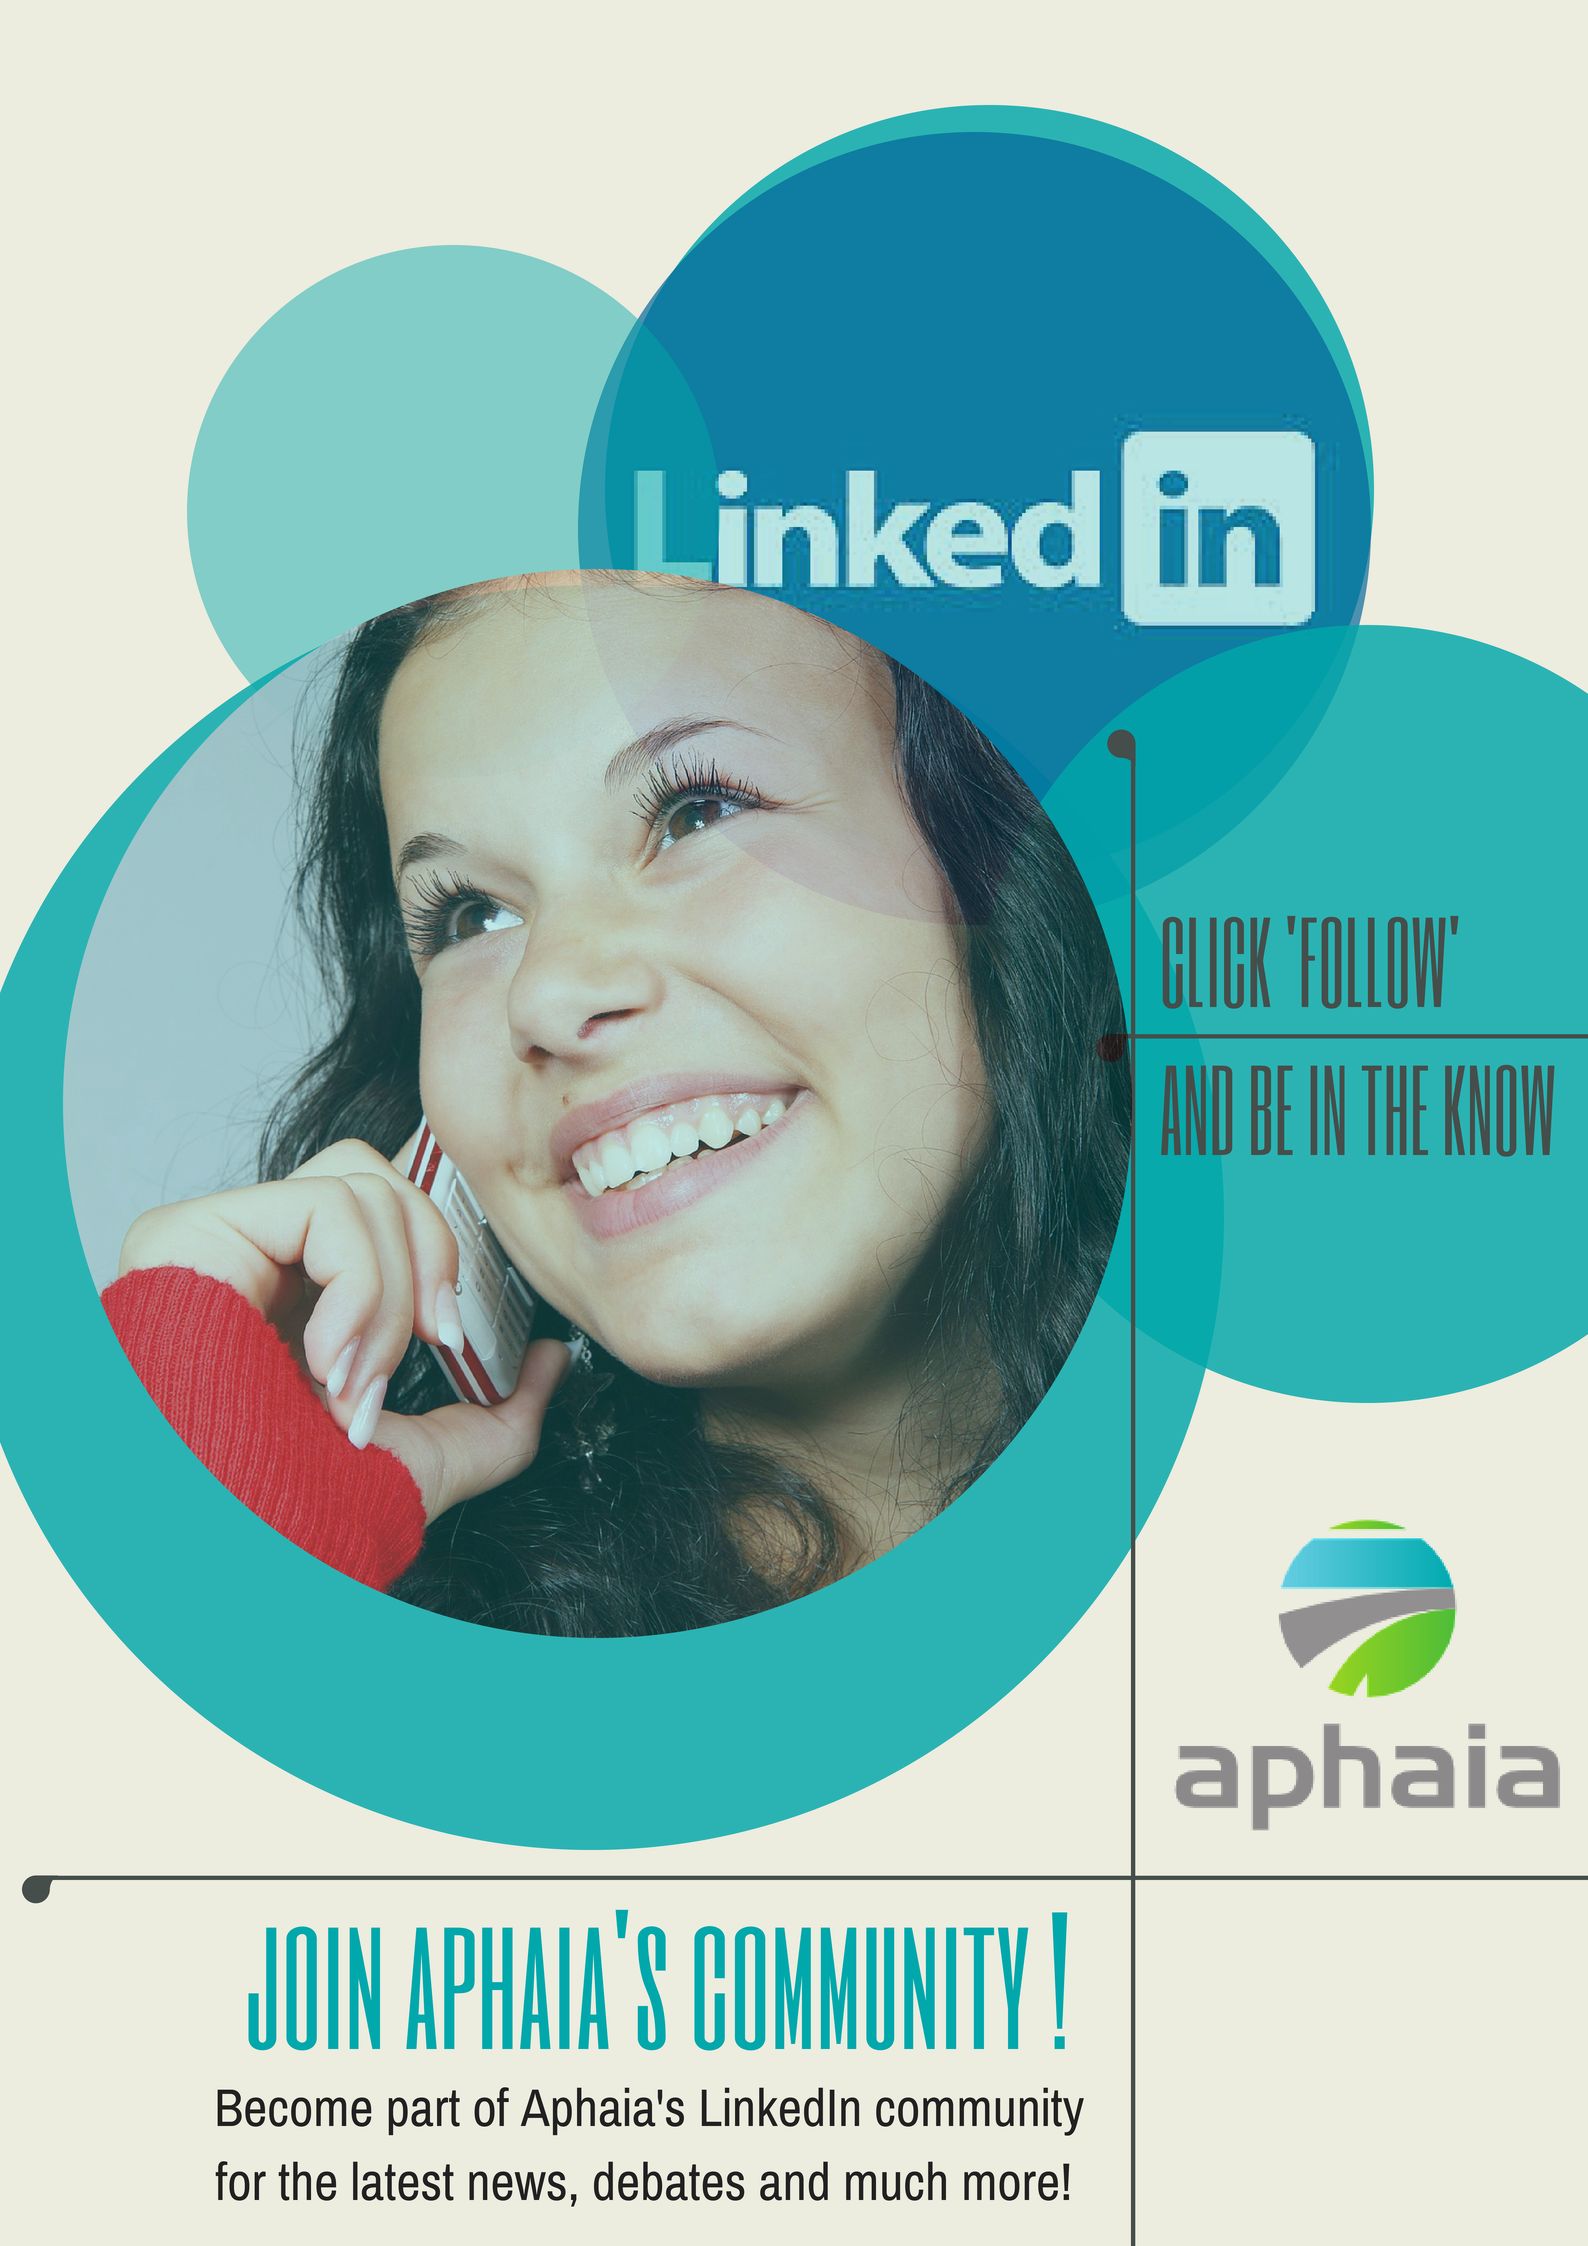 Follow Aphaia LinkedIn pages